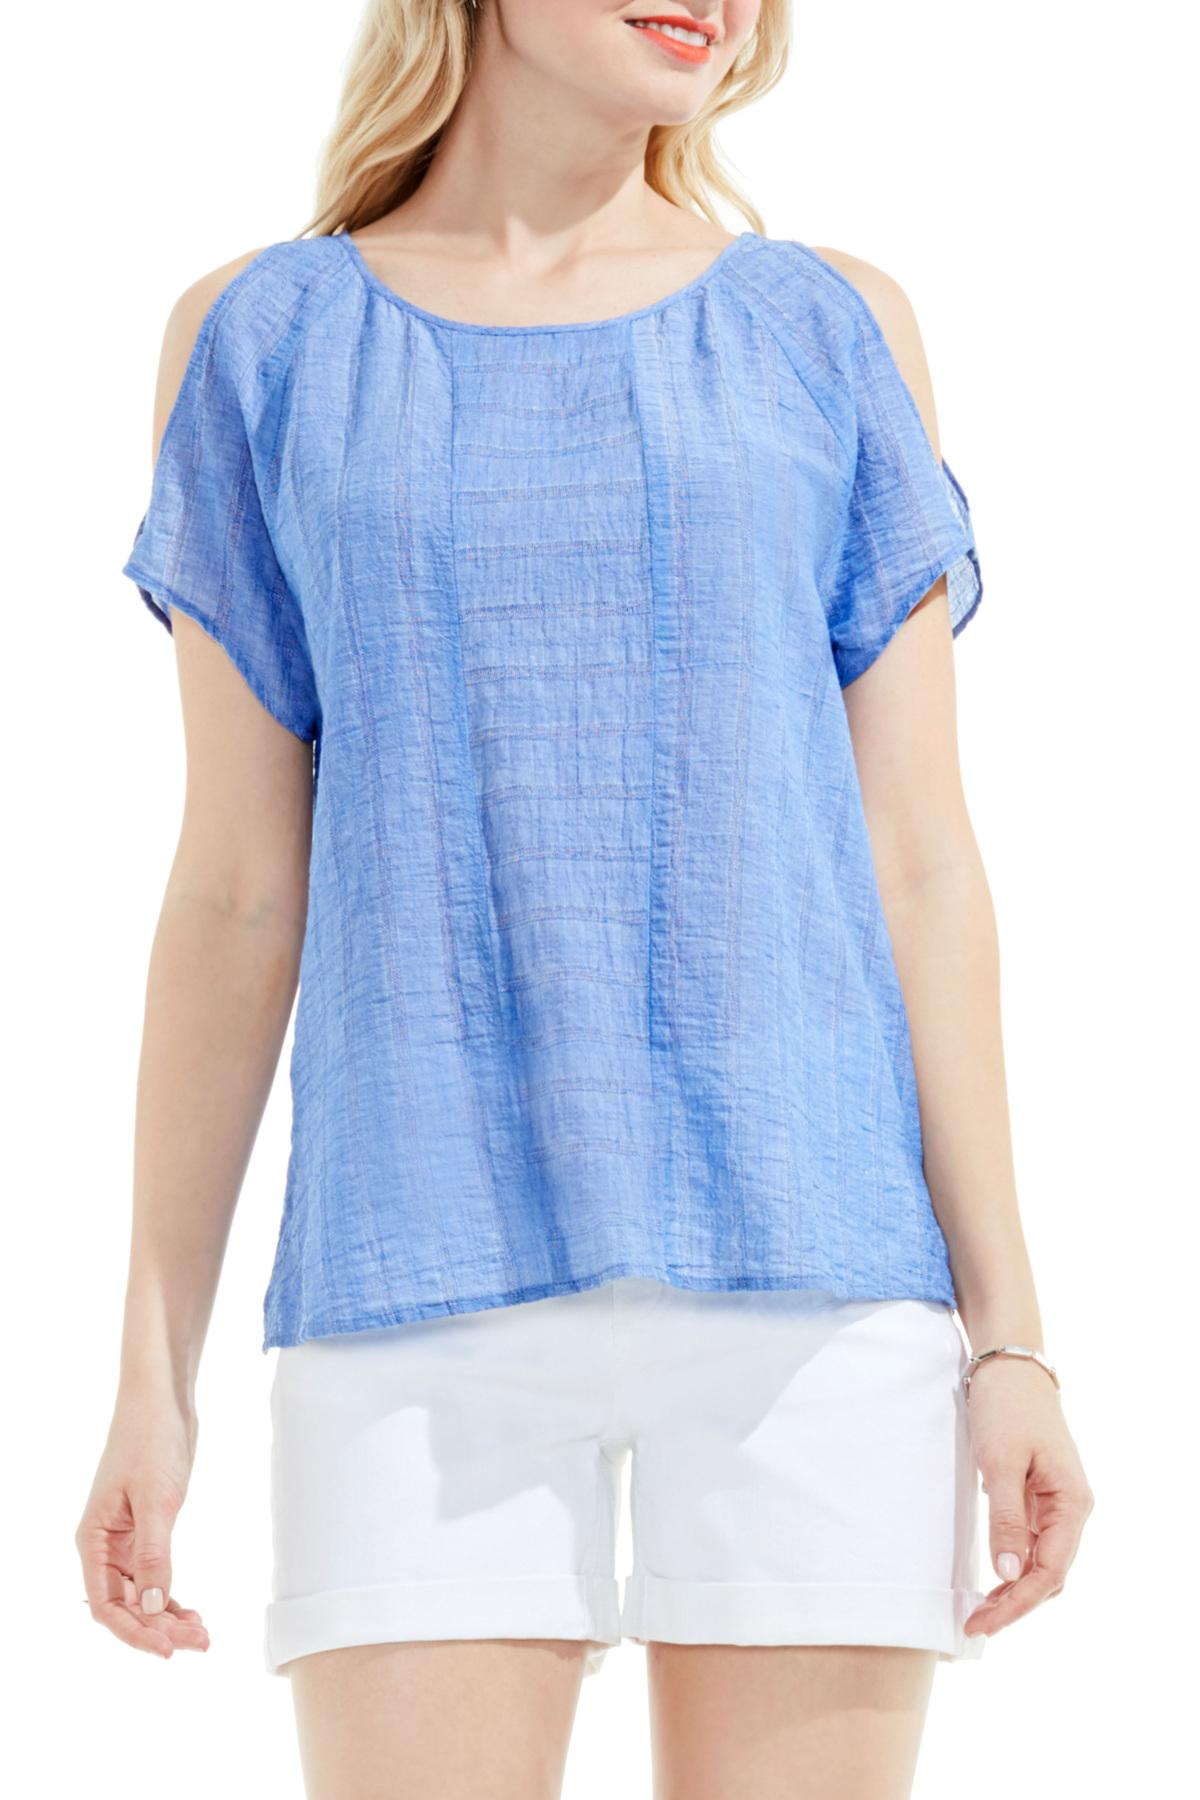 e21a83a203e2f Lyst - Two By Vince Camuto Stripe Gauze Cold Shoulder Top in Blue